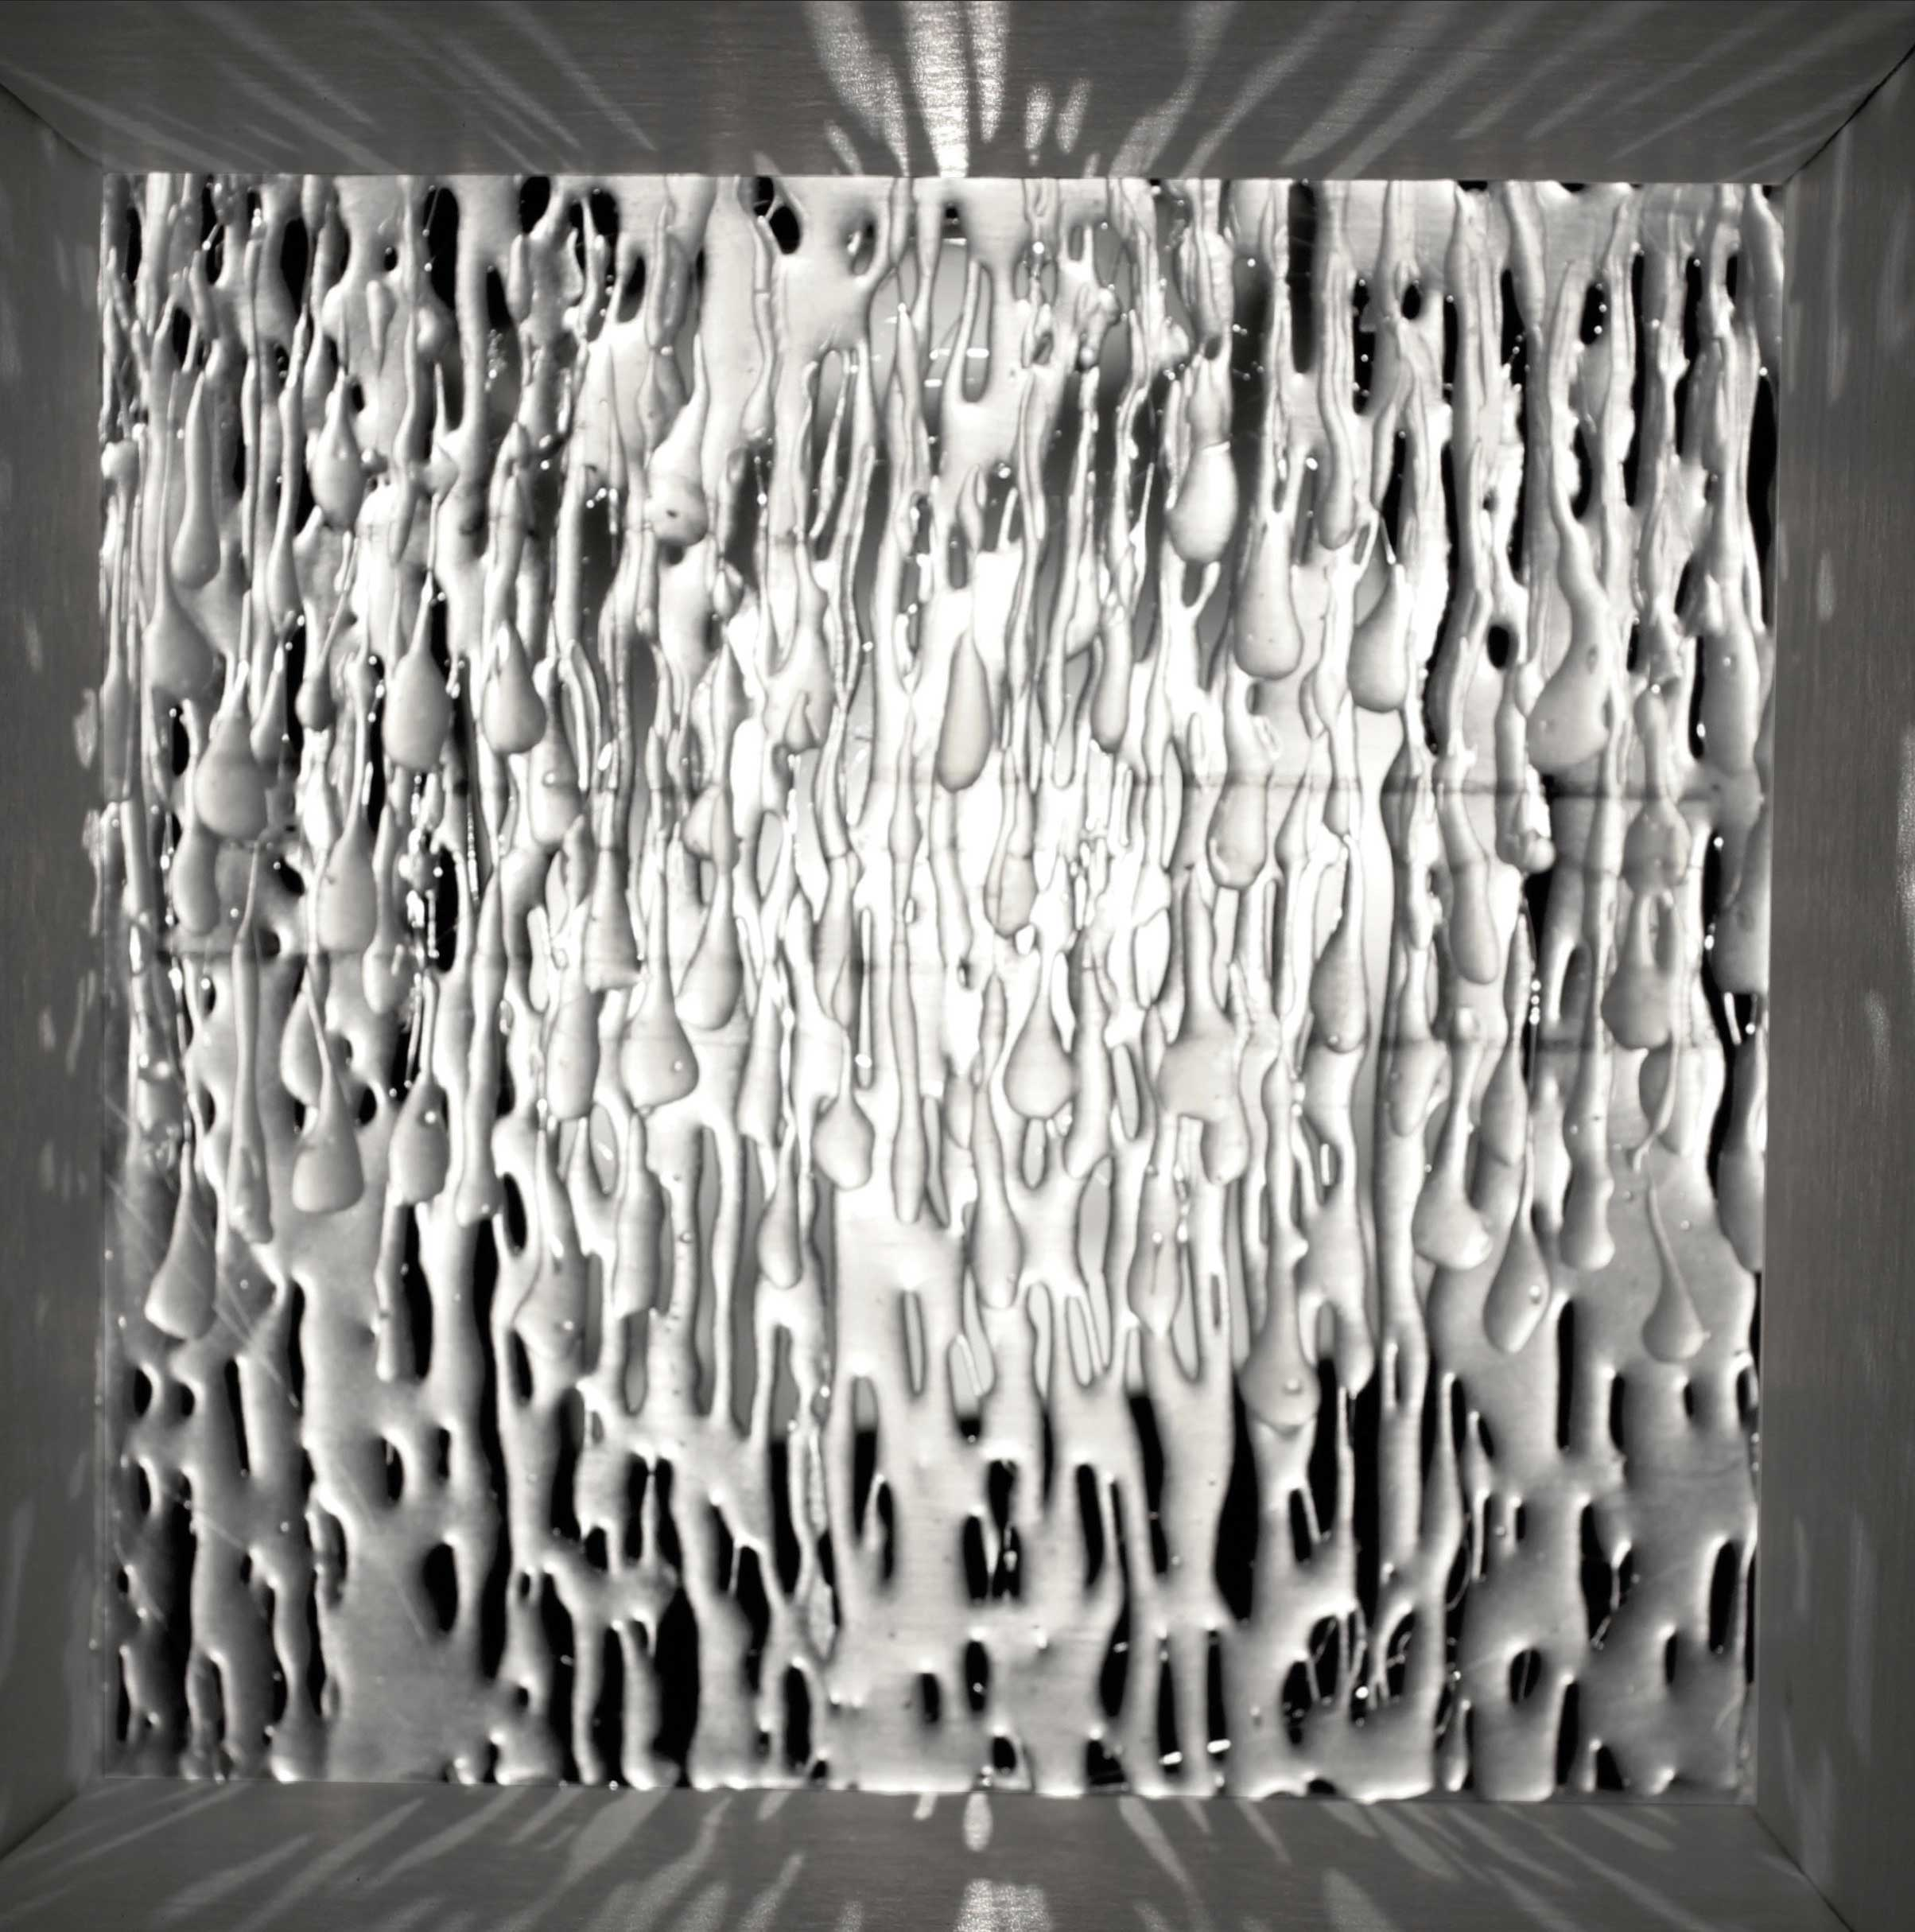 Avery Harmon: Cenotaph Memorial. Black and white image done in a lightbox. The student used foam core and hot glue to create a unique image that looks like water dripping.